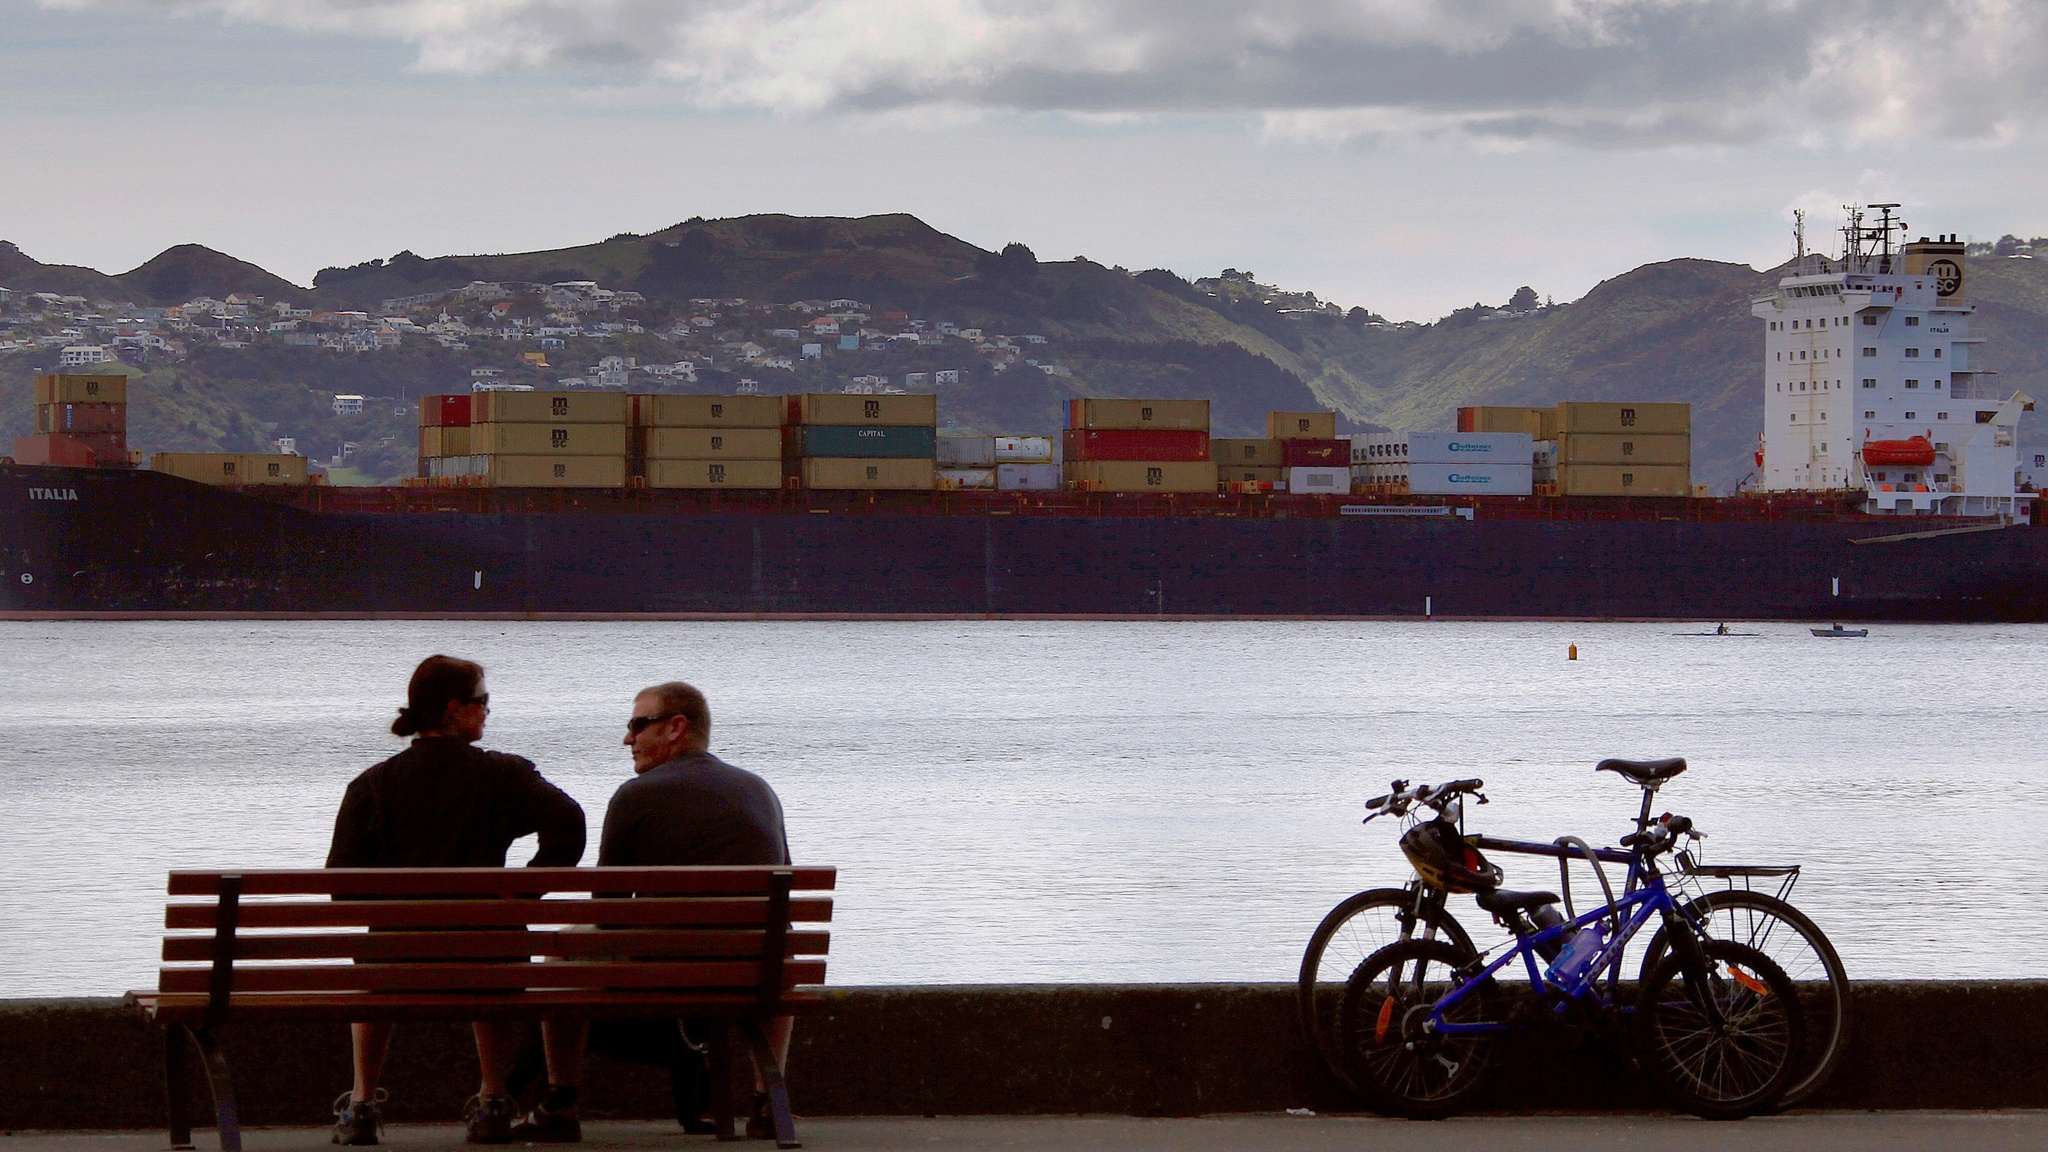 New Zealand's economic growth slows to more than 5-year low